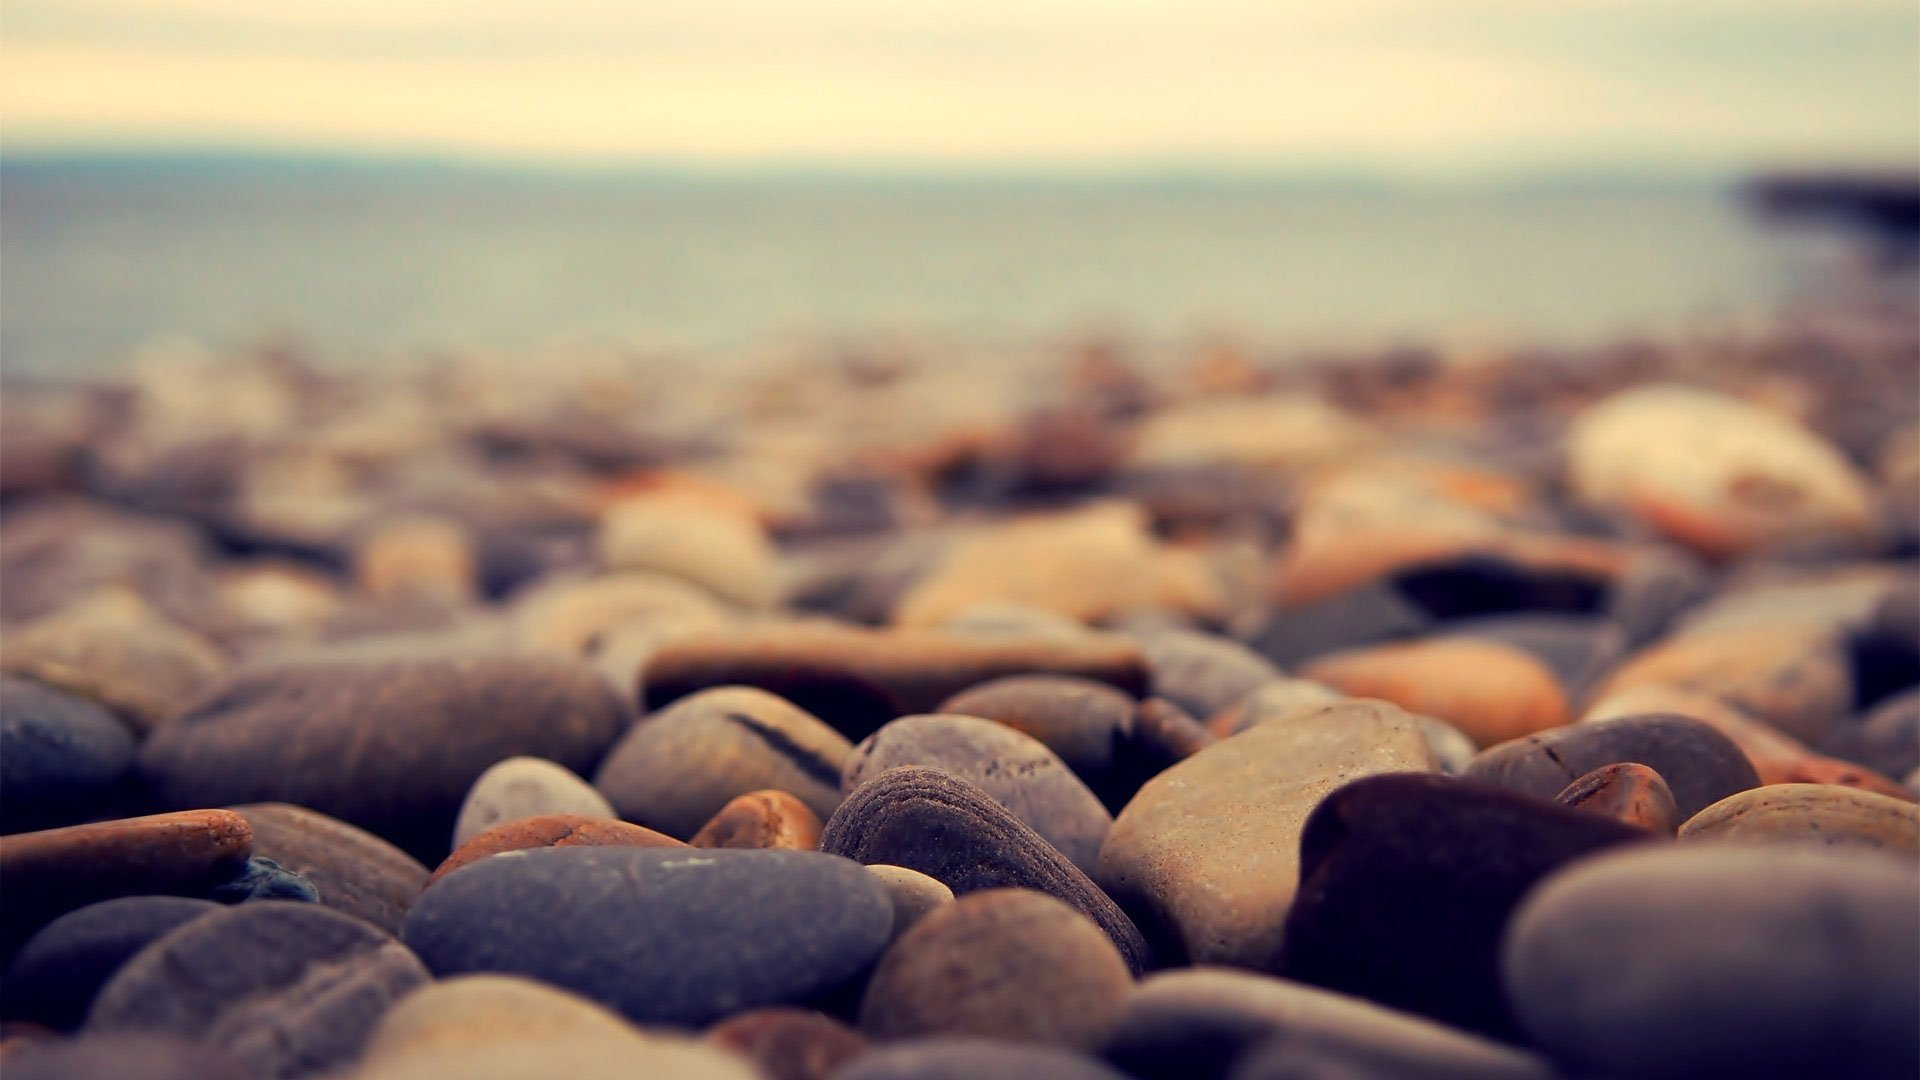 Stone Pebbles for House Music Cover